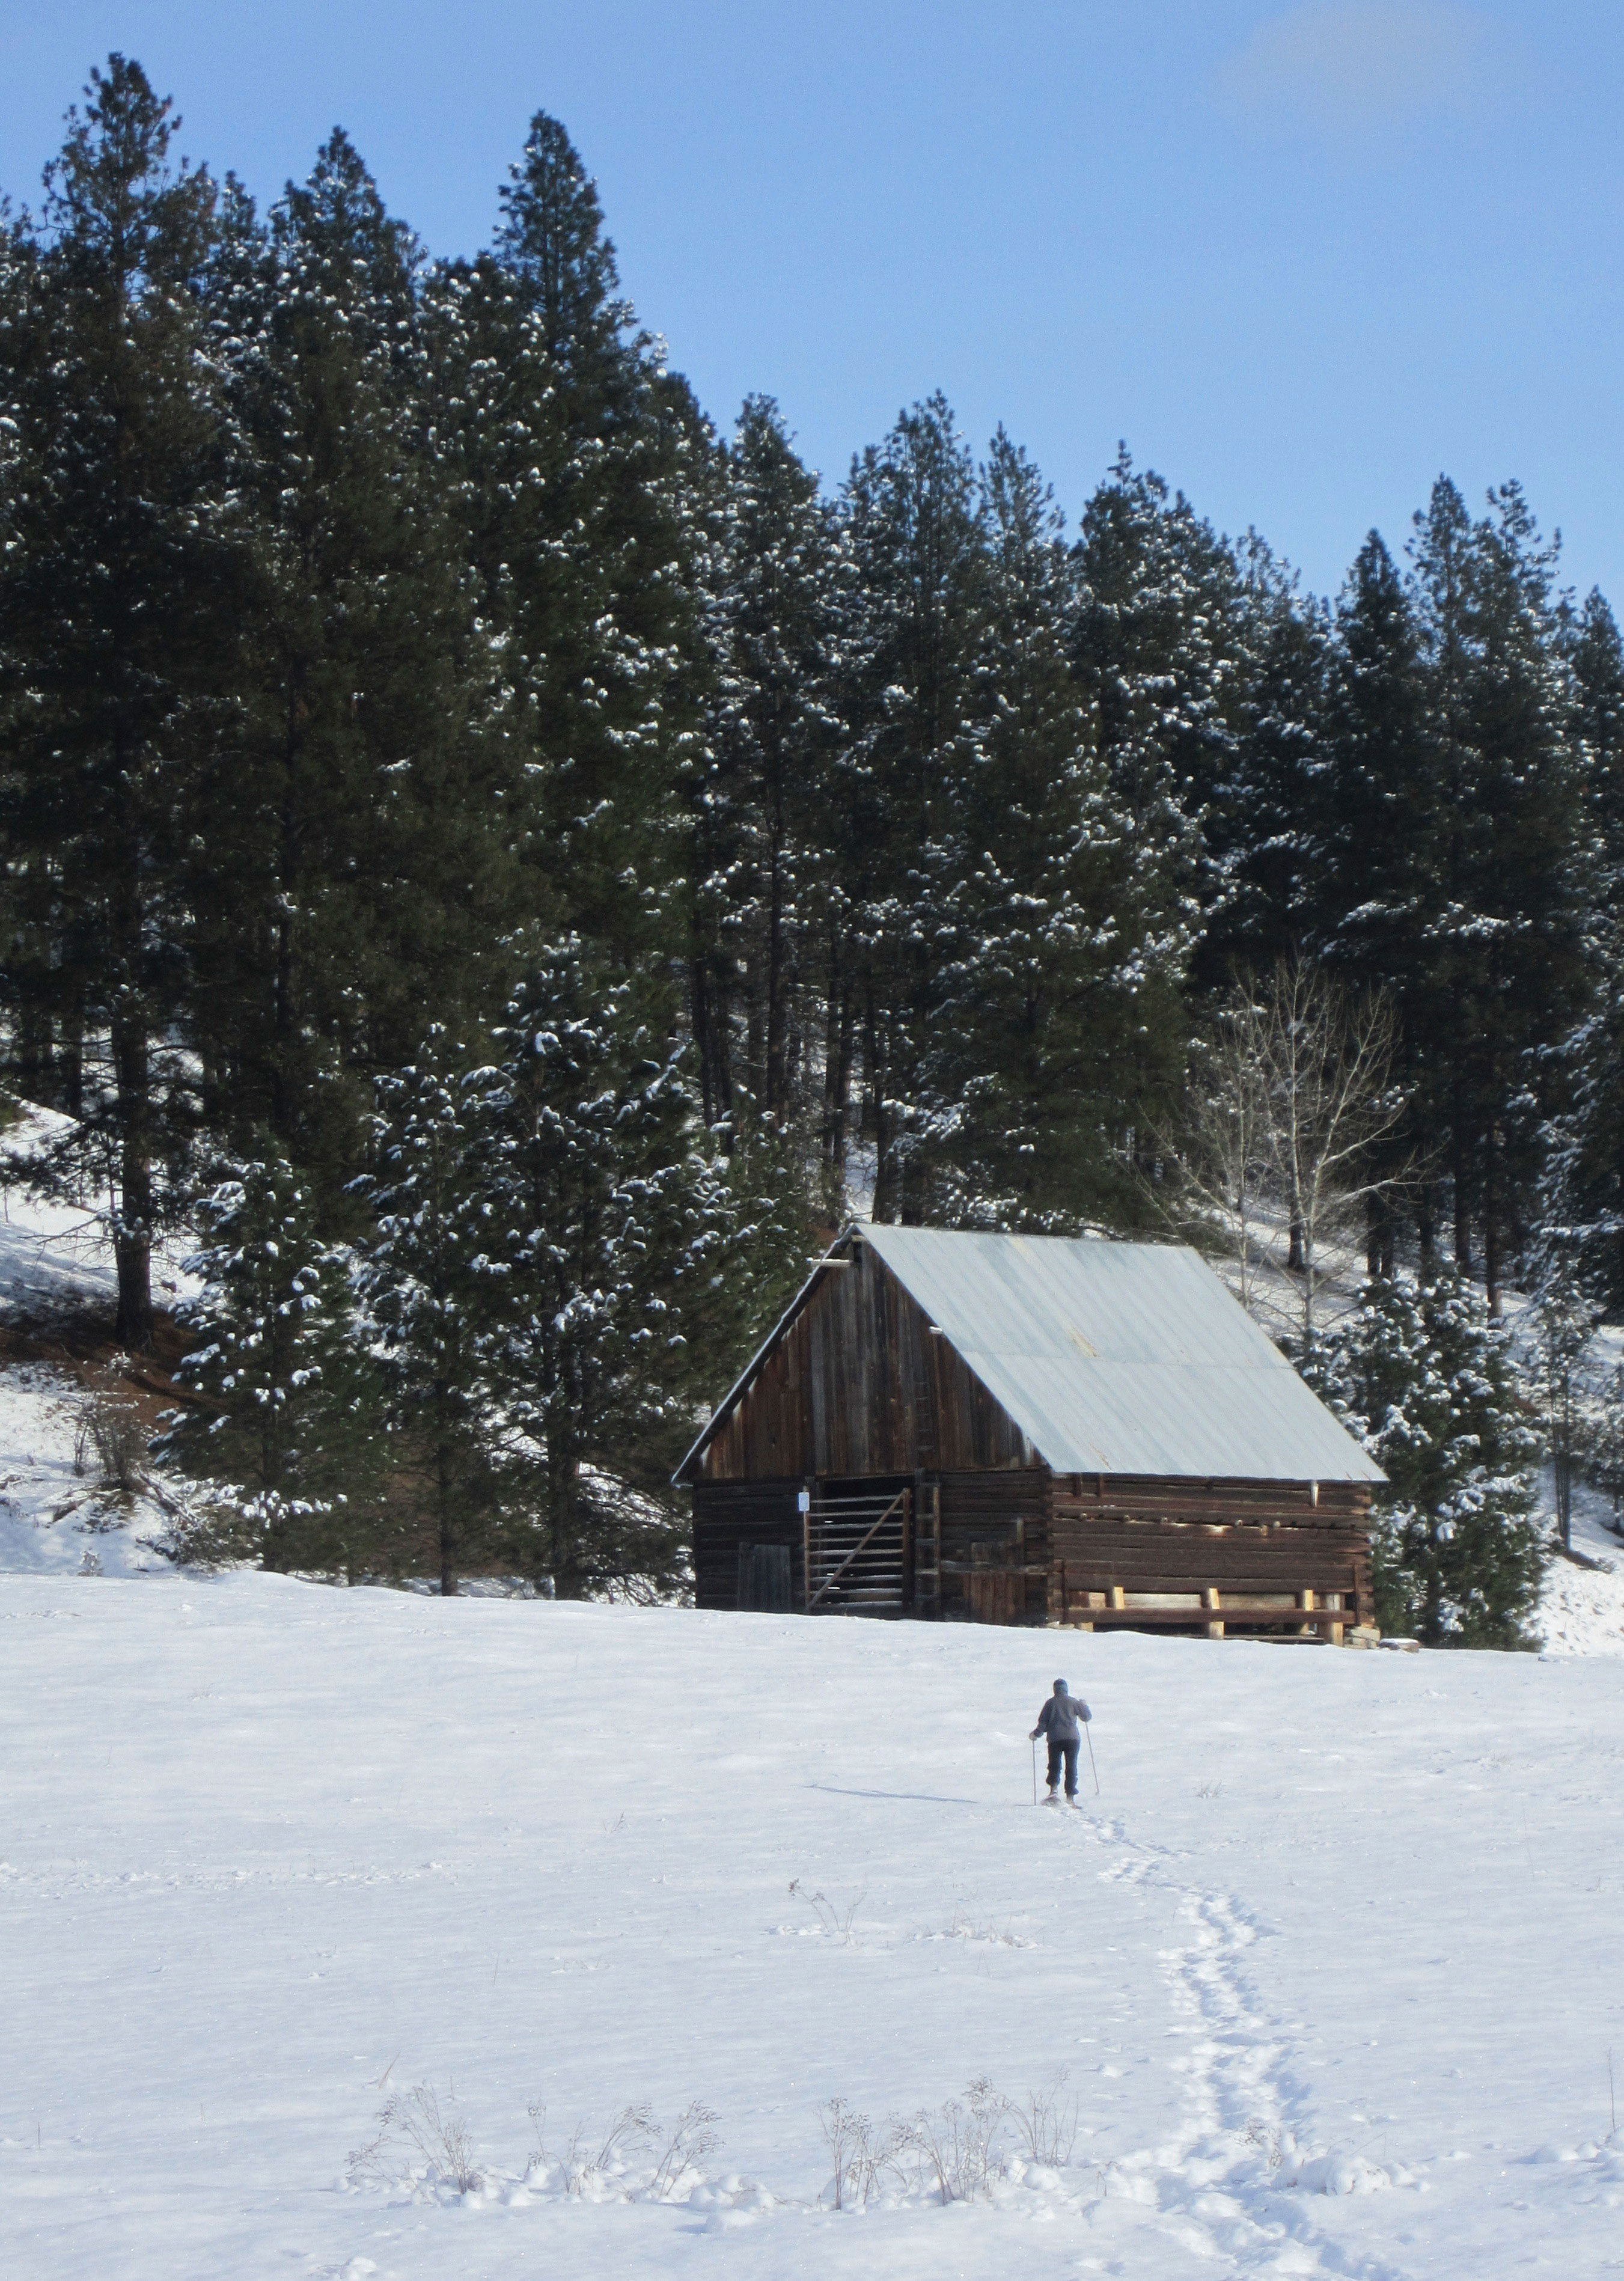 Snowshoeing To the Old Barn